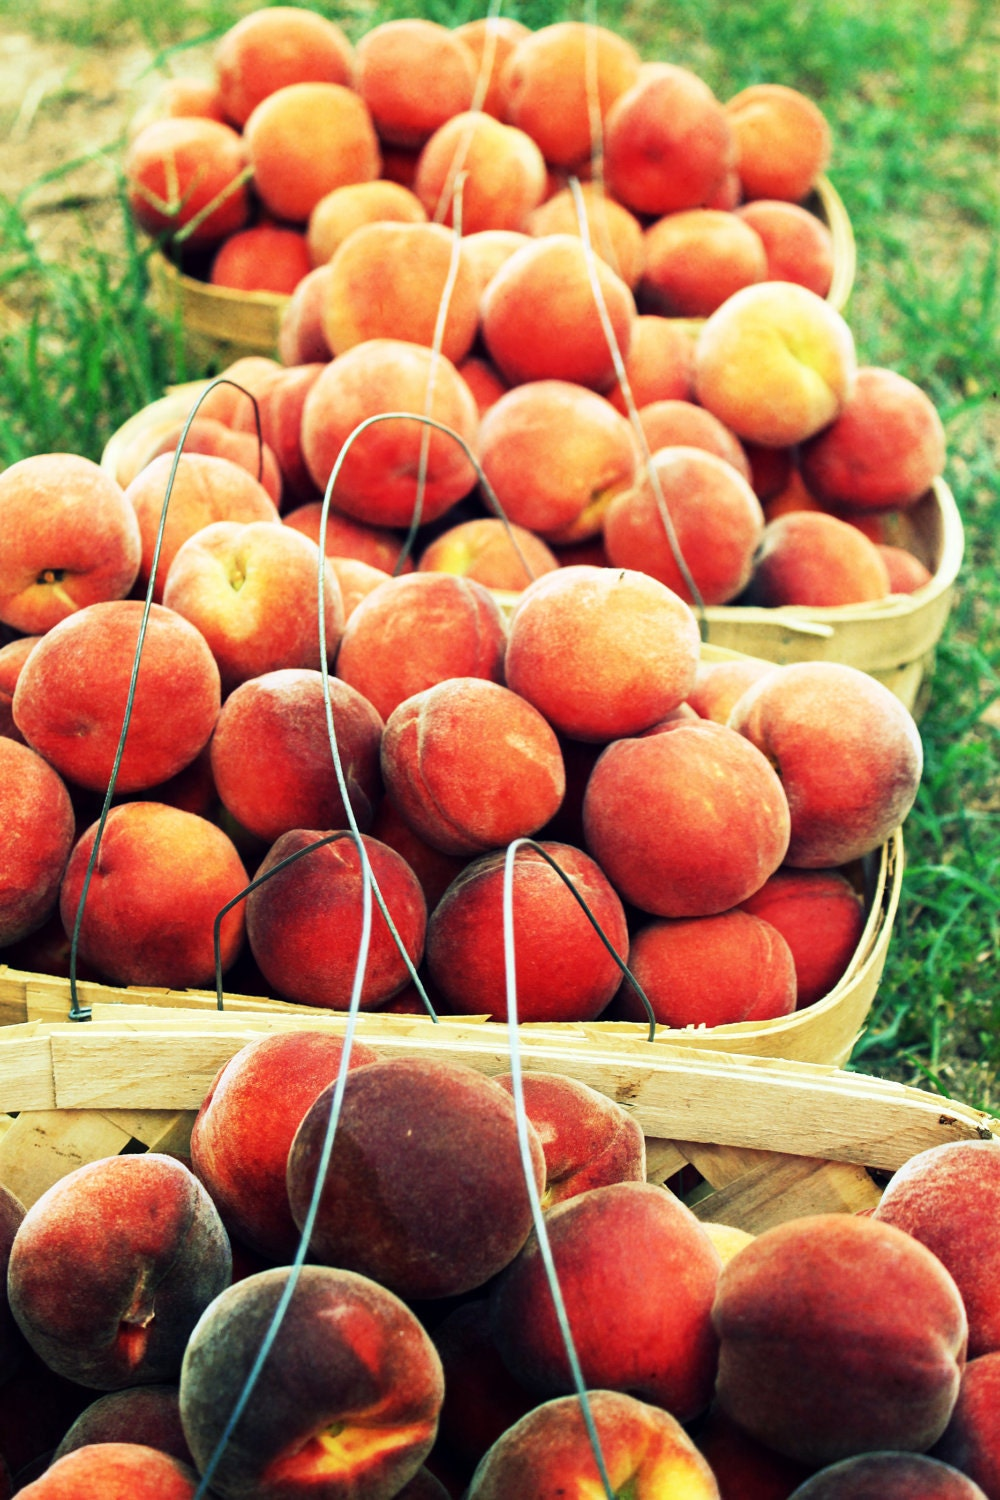 Peaches orange south southern yellow red fruit basket green grass country rural rustic simple gray 8x12 photograph clanton alabama - SouthernHippie